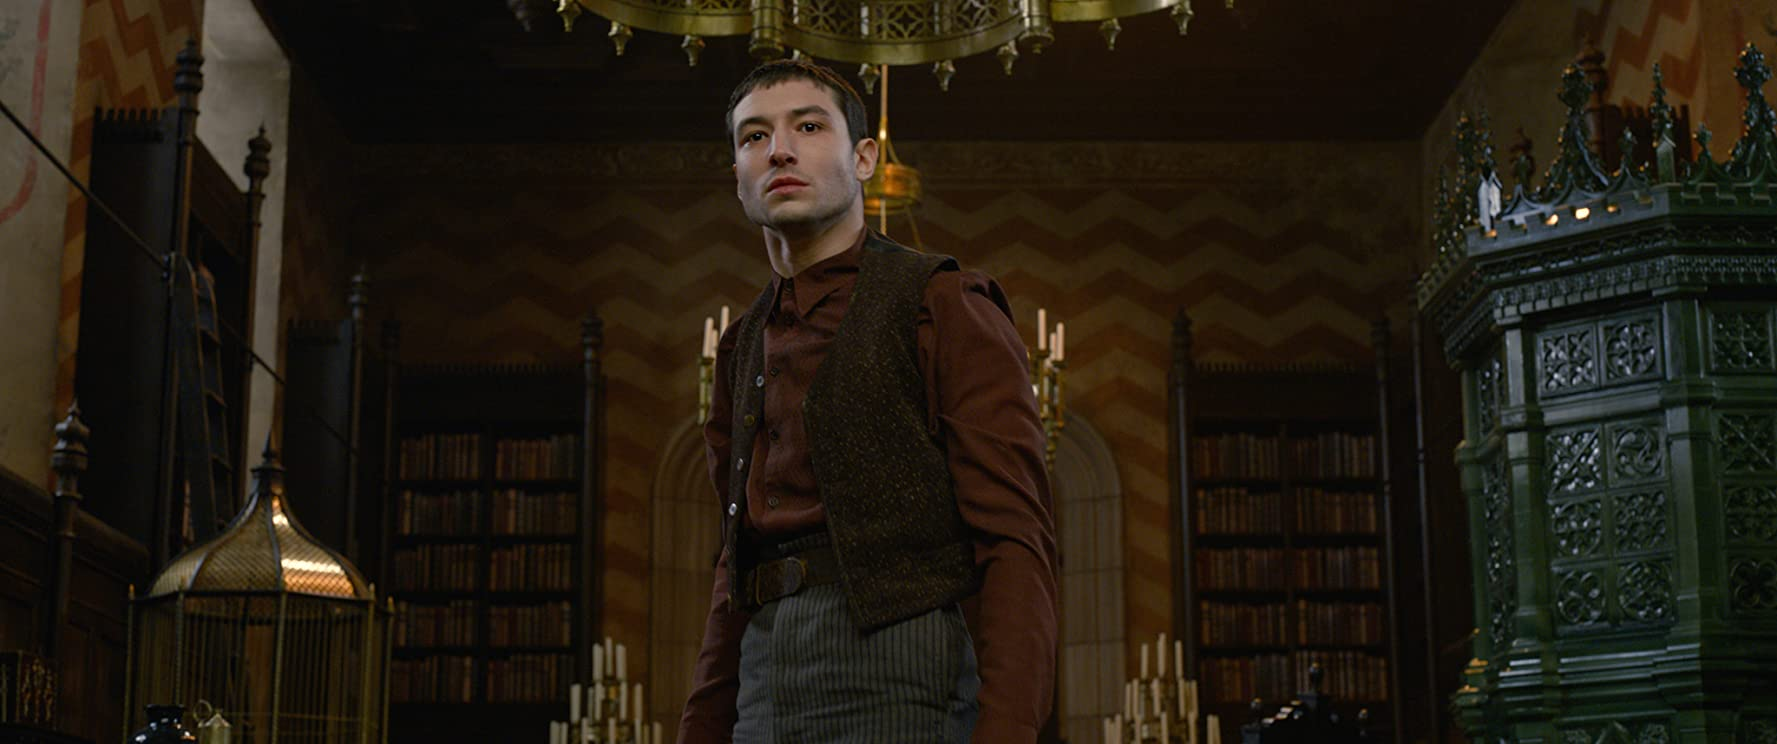 "Credence RevivalEzra Miller (/name/nm3009232) returns as Credence, a young man once believed to be non-magical but found to have developed an Obscurus (a dark parasitical magical force). Credence has come to Paris, where he is desperately searching for his real mother, hoping to learn his true identity. Taking a break from filming, Miller said: ""He's a bit of a ticking time bomb, given his particular magical condition. But he has a burning need to know more about who he actually is... so he's on this quest for identity."" He added: ""What I think is interesting in the story of Credence is that he has been betrayed and mistreated by both worlds at this point. He has been mistreated by folks in the wizarding world, and muggle folks as well, so I think there a great skepticism of everyone he sees."""